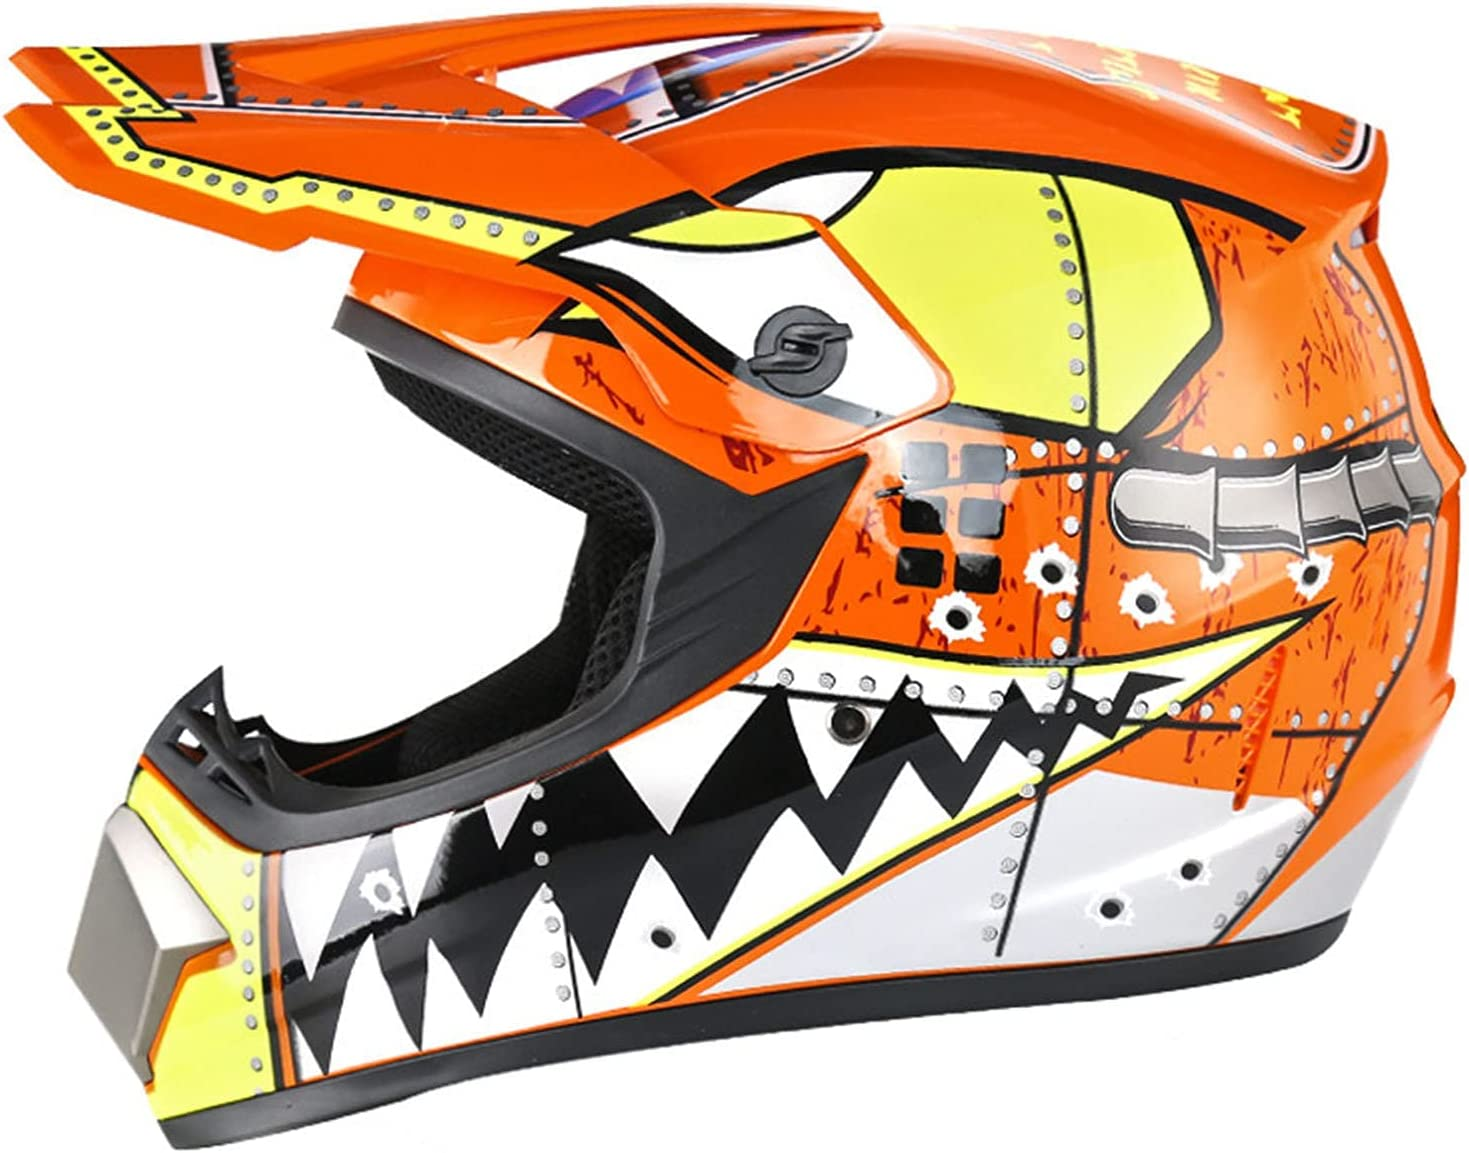 ZRN Unisex-Adult Off-Road Helmet Youth Street Motocross Bi Max 57% OFF Dirt Selling and selling